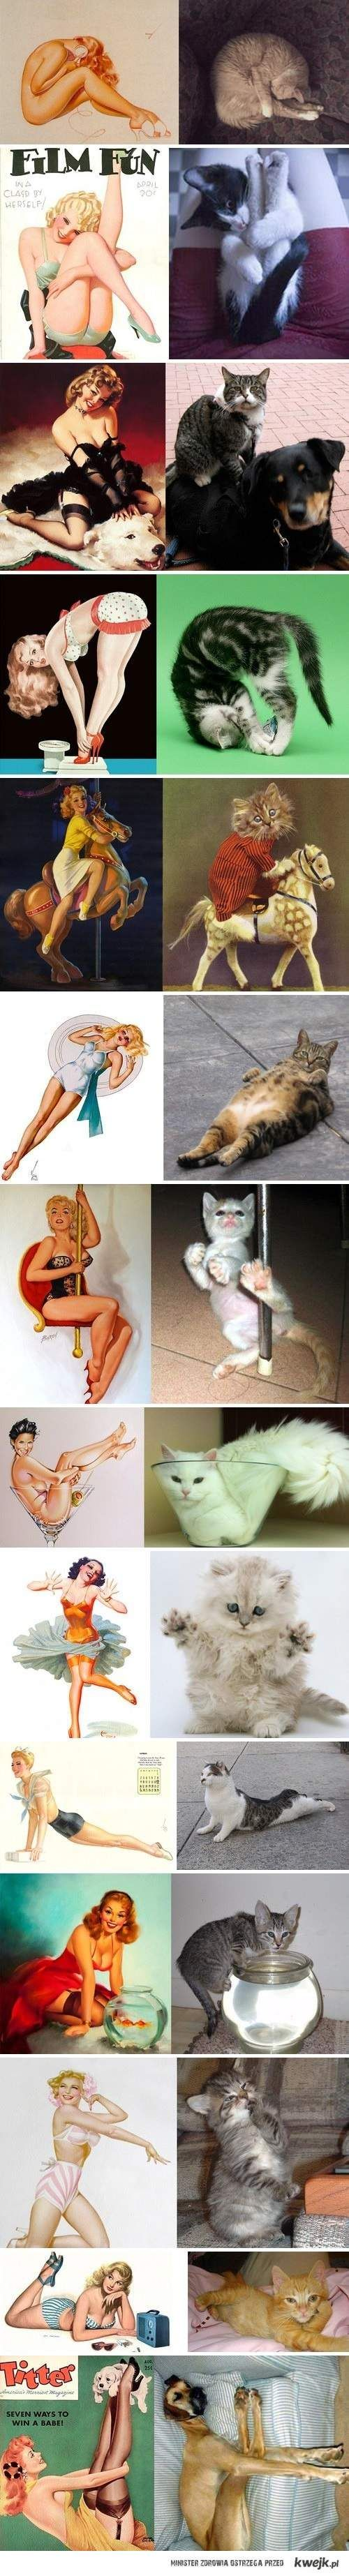 Pin up cats